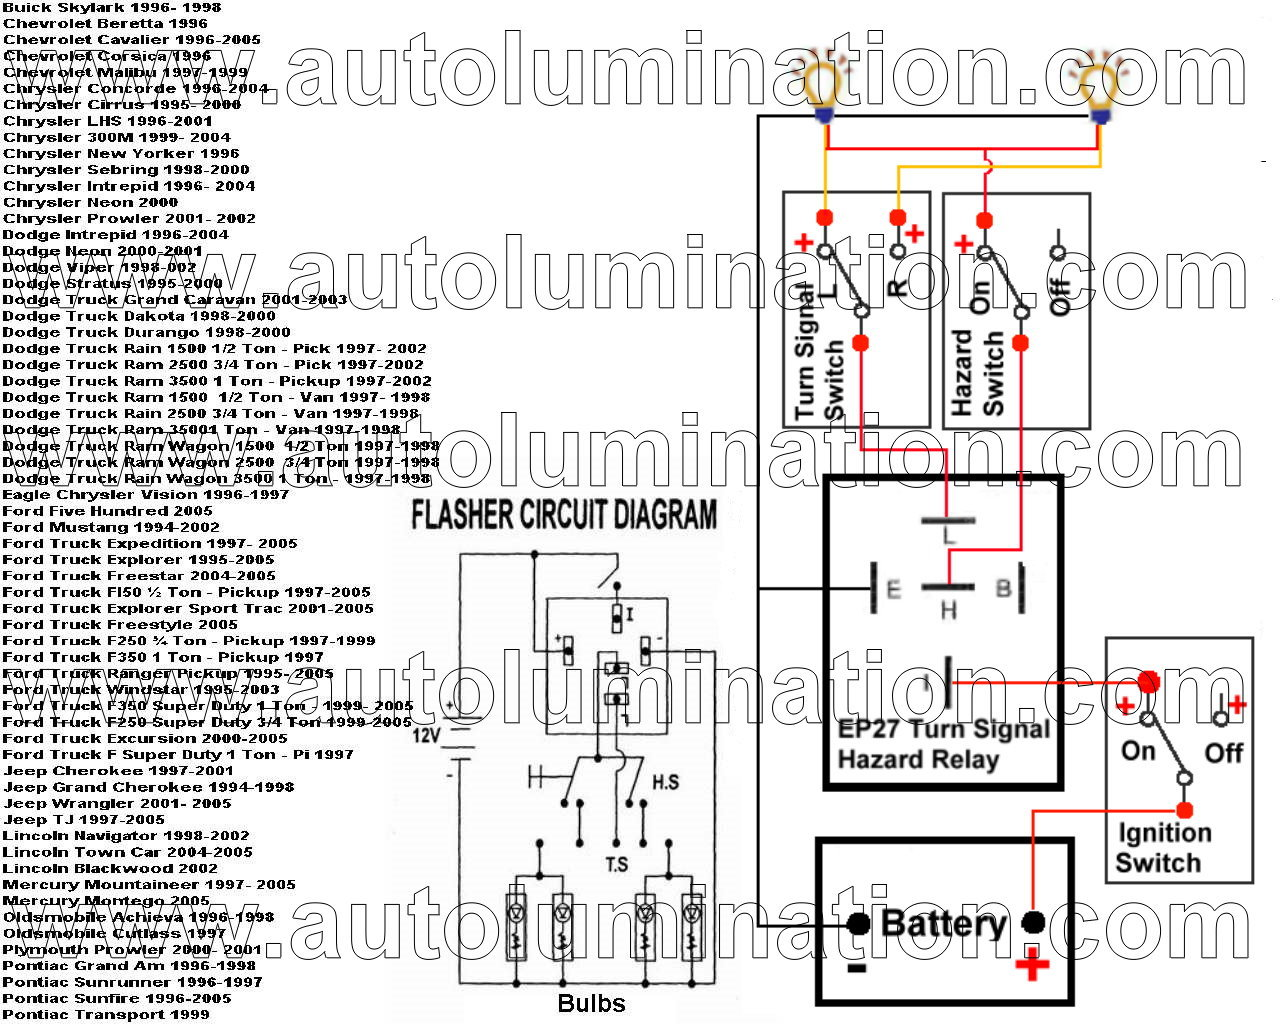 dodge ram ignition switch wiring diagram  1996 sebring ignition switch wiring diagram color code 1996 auto on 2002 dodge ram 1500 ignition